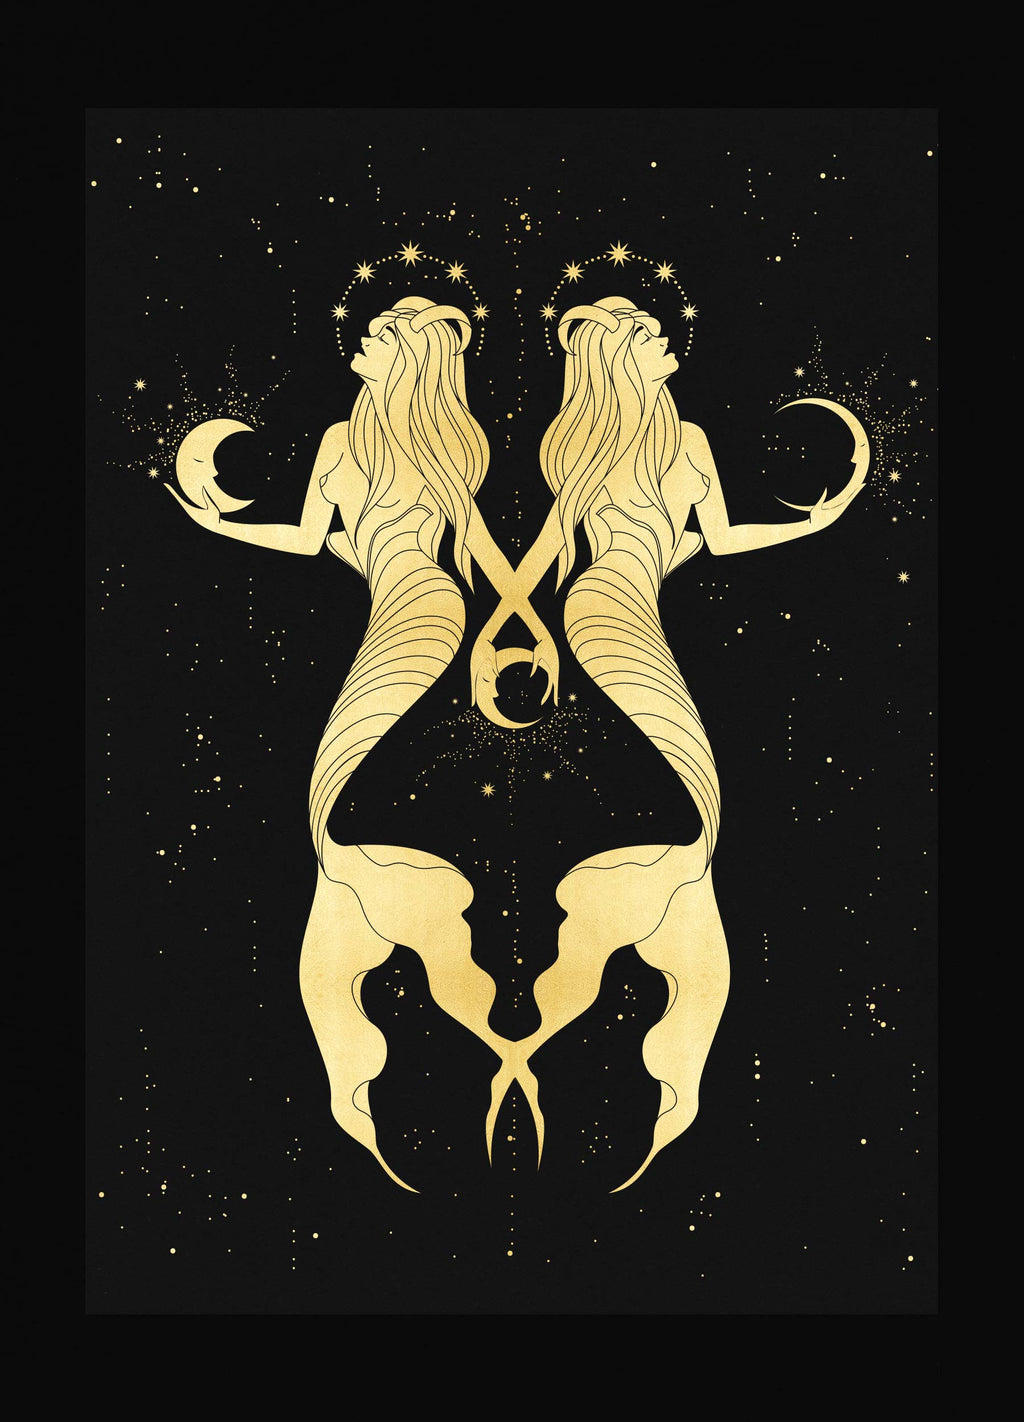 Water Nymphs Gold foil artwork print on Black paper by Cocorrina & Co Shop